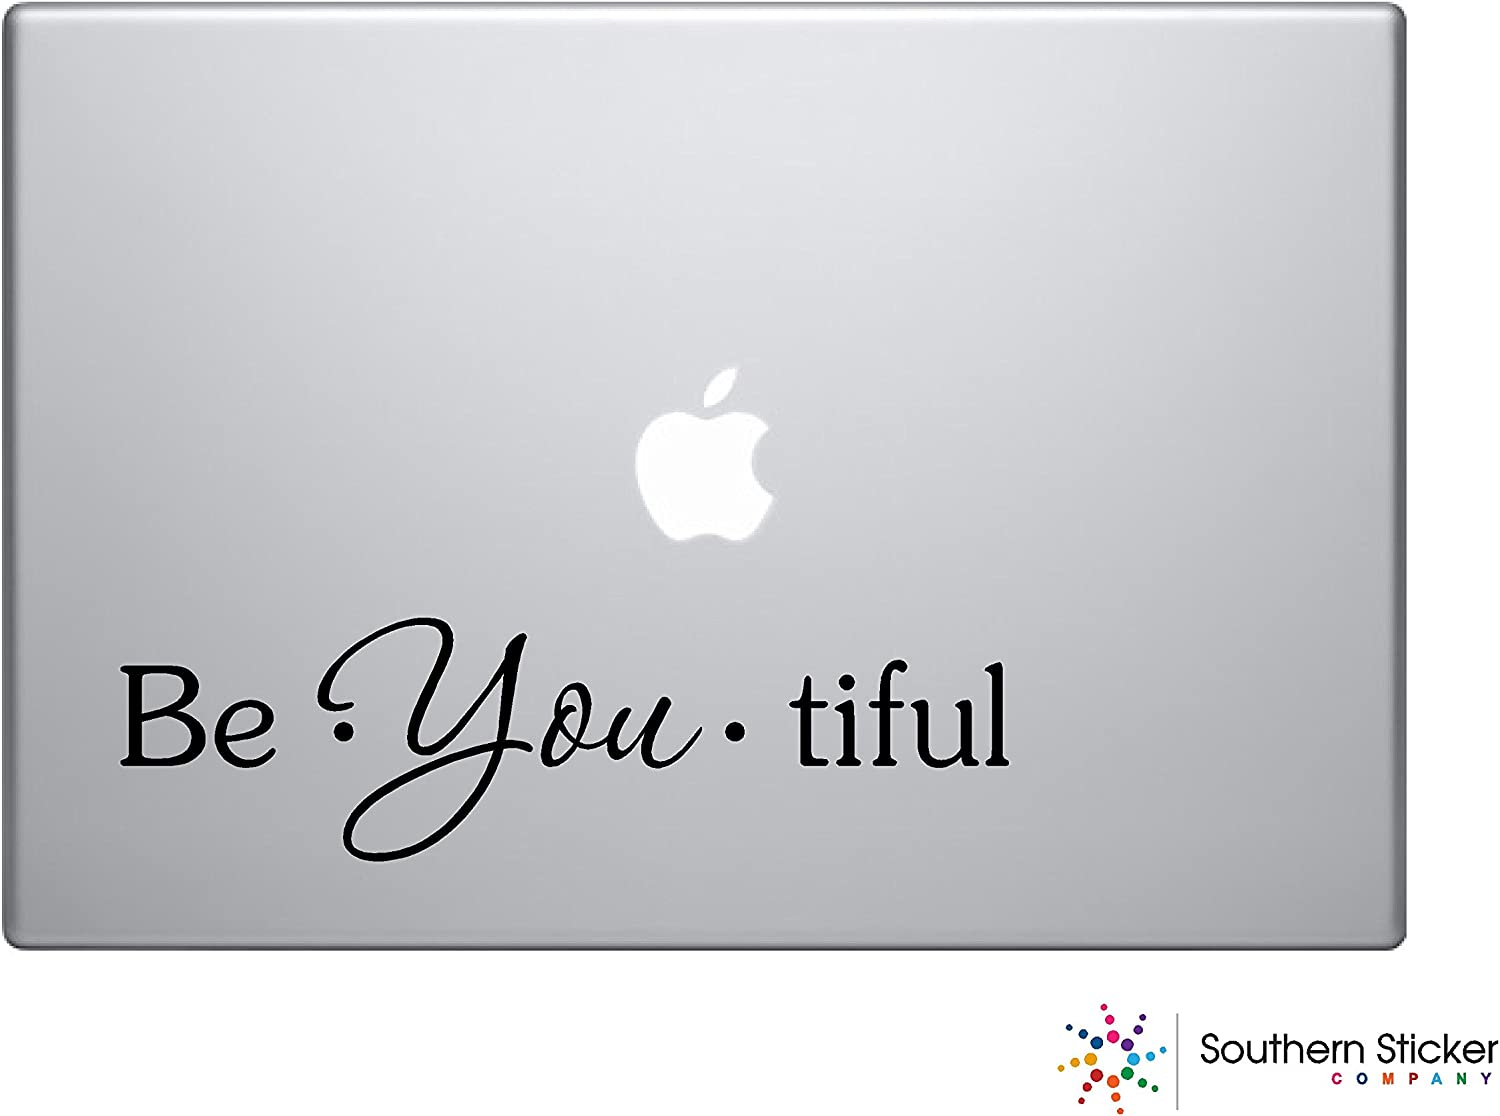 Be You Tiful discount Branded goods Text Black Iphon Macbook Silhouette Bathroom Symbol